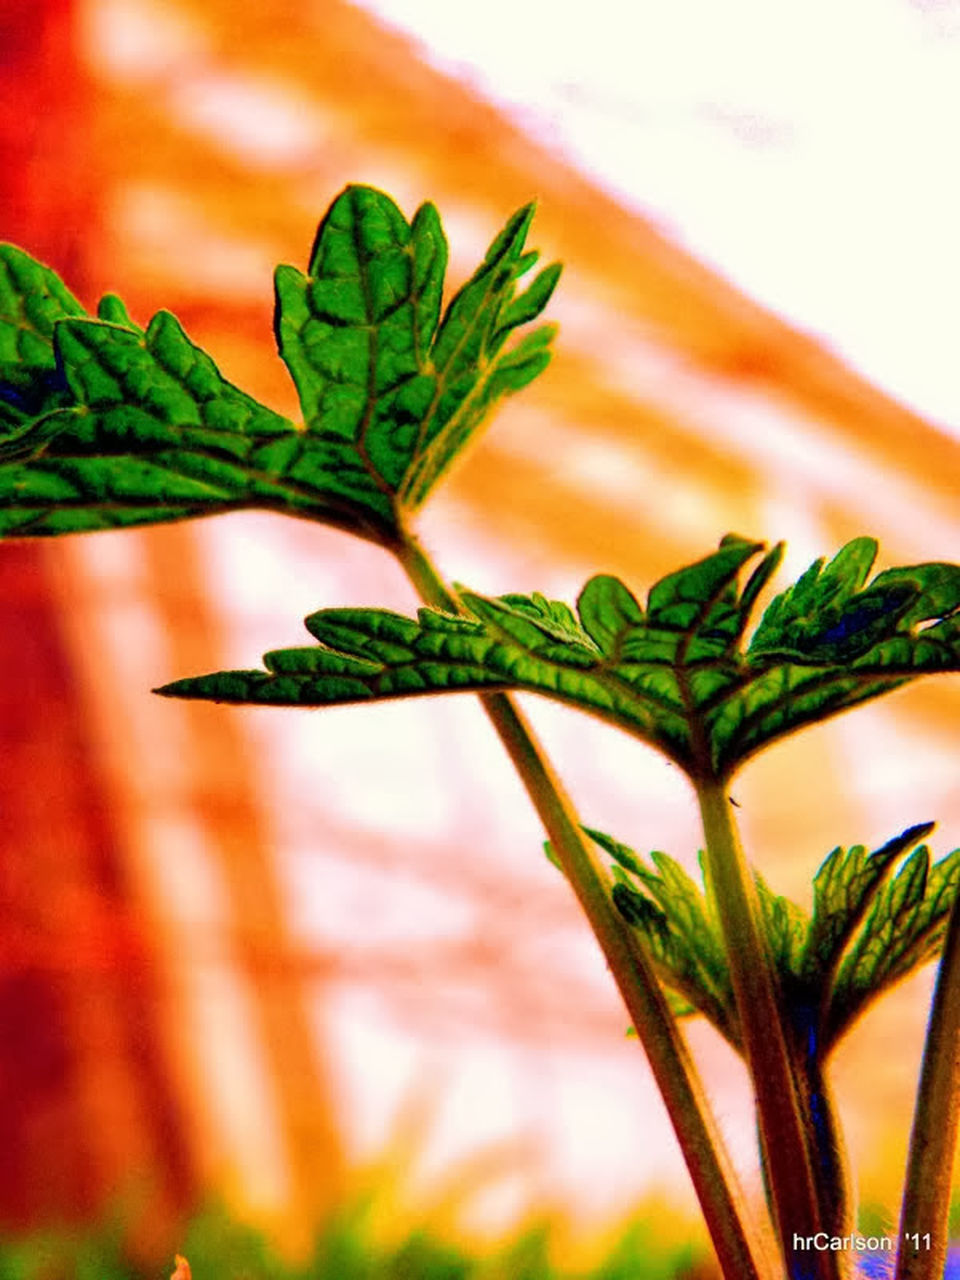 green color, plant, leaf, nature, no people, herb, growth, freshness, herbal medicine, close-up, beauty in nature, outdoors, day